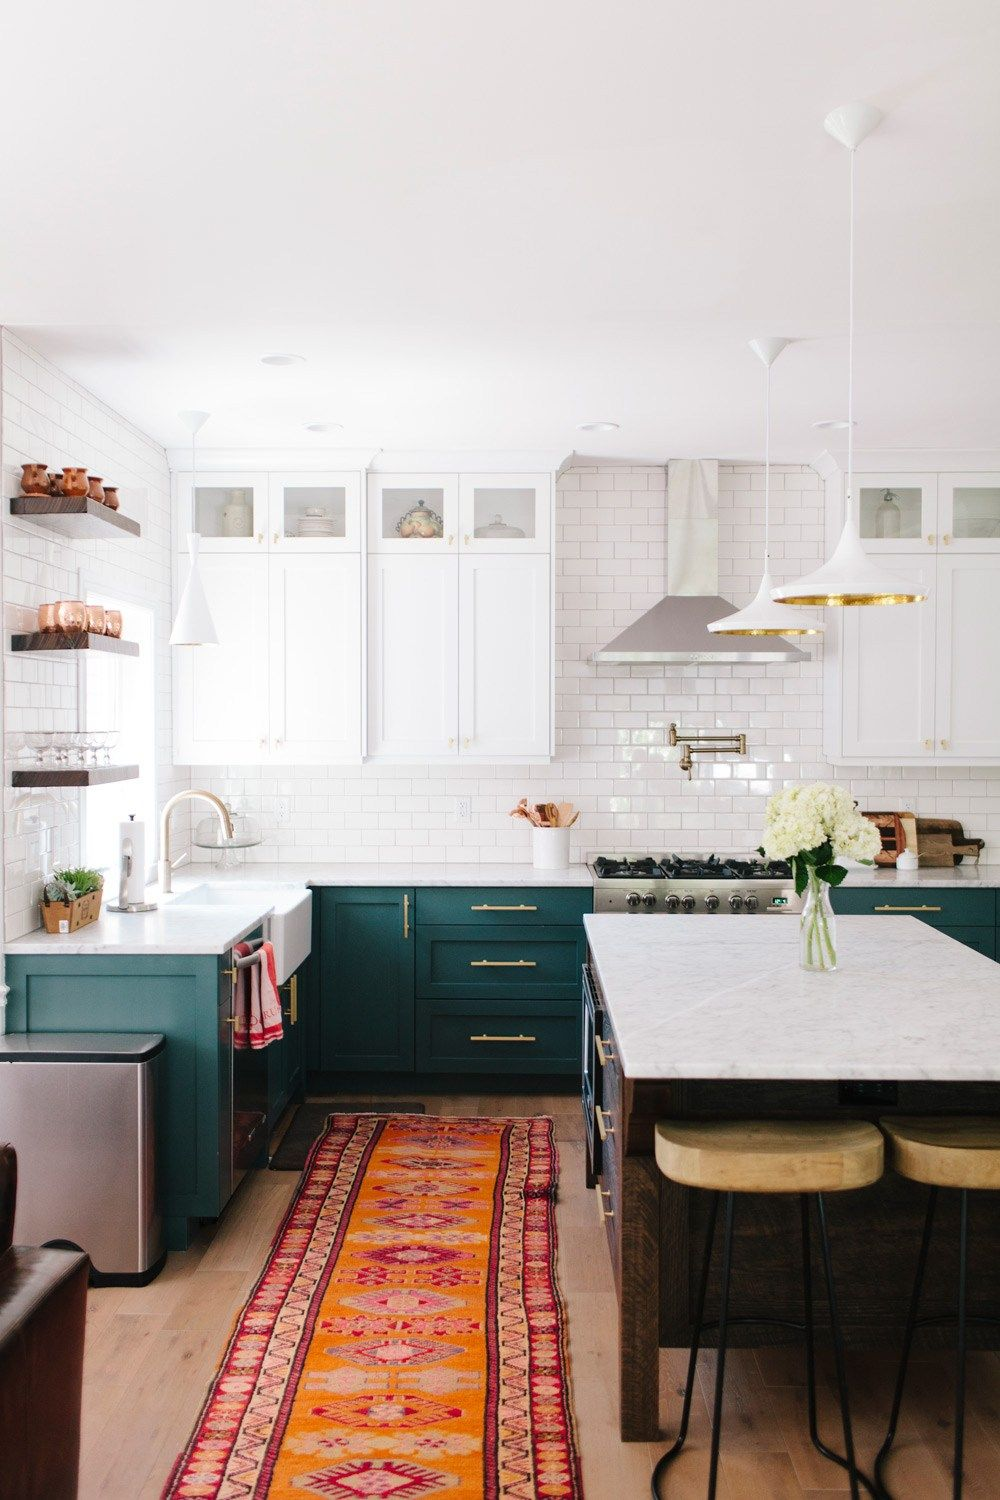 The Best Dark Green Kitchens Like Ever | Dark green kitchen, Green Hunter Green Kitchen Update Ideas on designer white kitchen ideas, rust kitchen ideas, red kitchen ideas, warm white kitchen ideas, blue gingham kitchen ideas, seafoam kitchen ideas, tangerine kitchen ideas, bronze kitchen ideas, pale yellow kitchen ideas, terra cotta kitchen ideas, eggplant kitchen ideas, deep purple kitchen ideas, silver kitchen ideas, mahogany kitchen ideas, champagne kitchen ideas, buttercup kitchen ideas, grape kitchen ideas, royal blue kitchen ideas, cappuccino kitchen ideas, mint kitchen ideas,